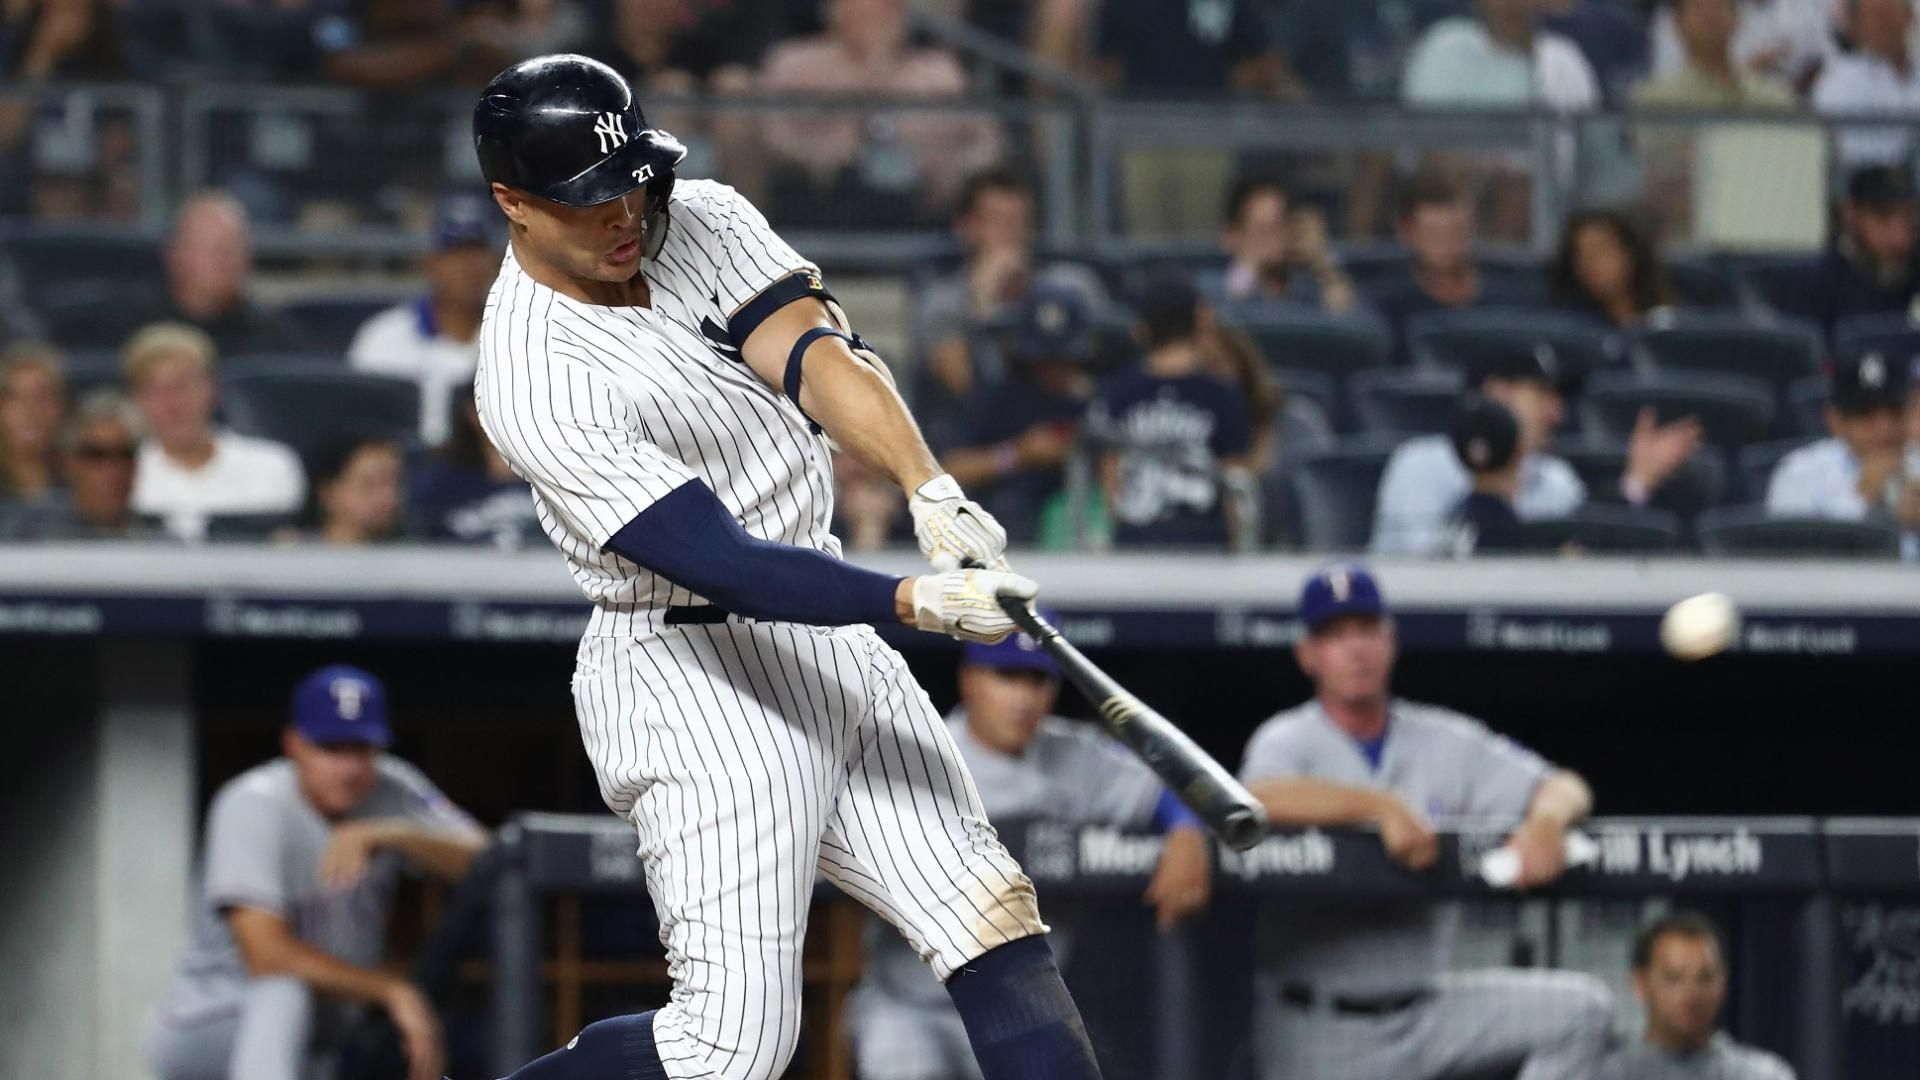 Stanton headlines this week's best homers